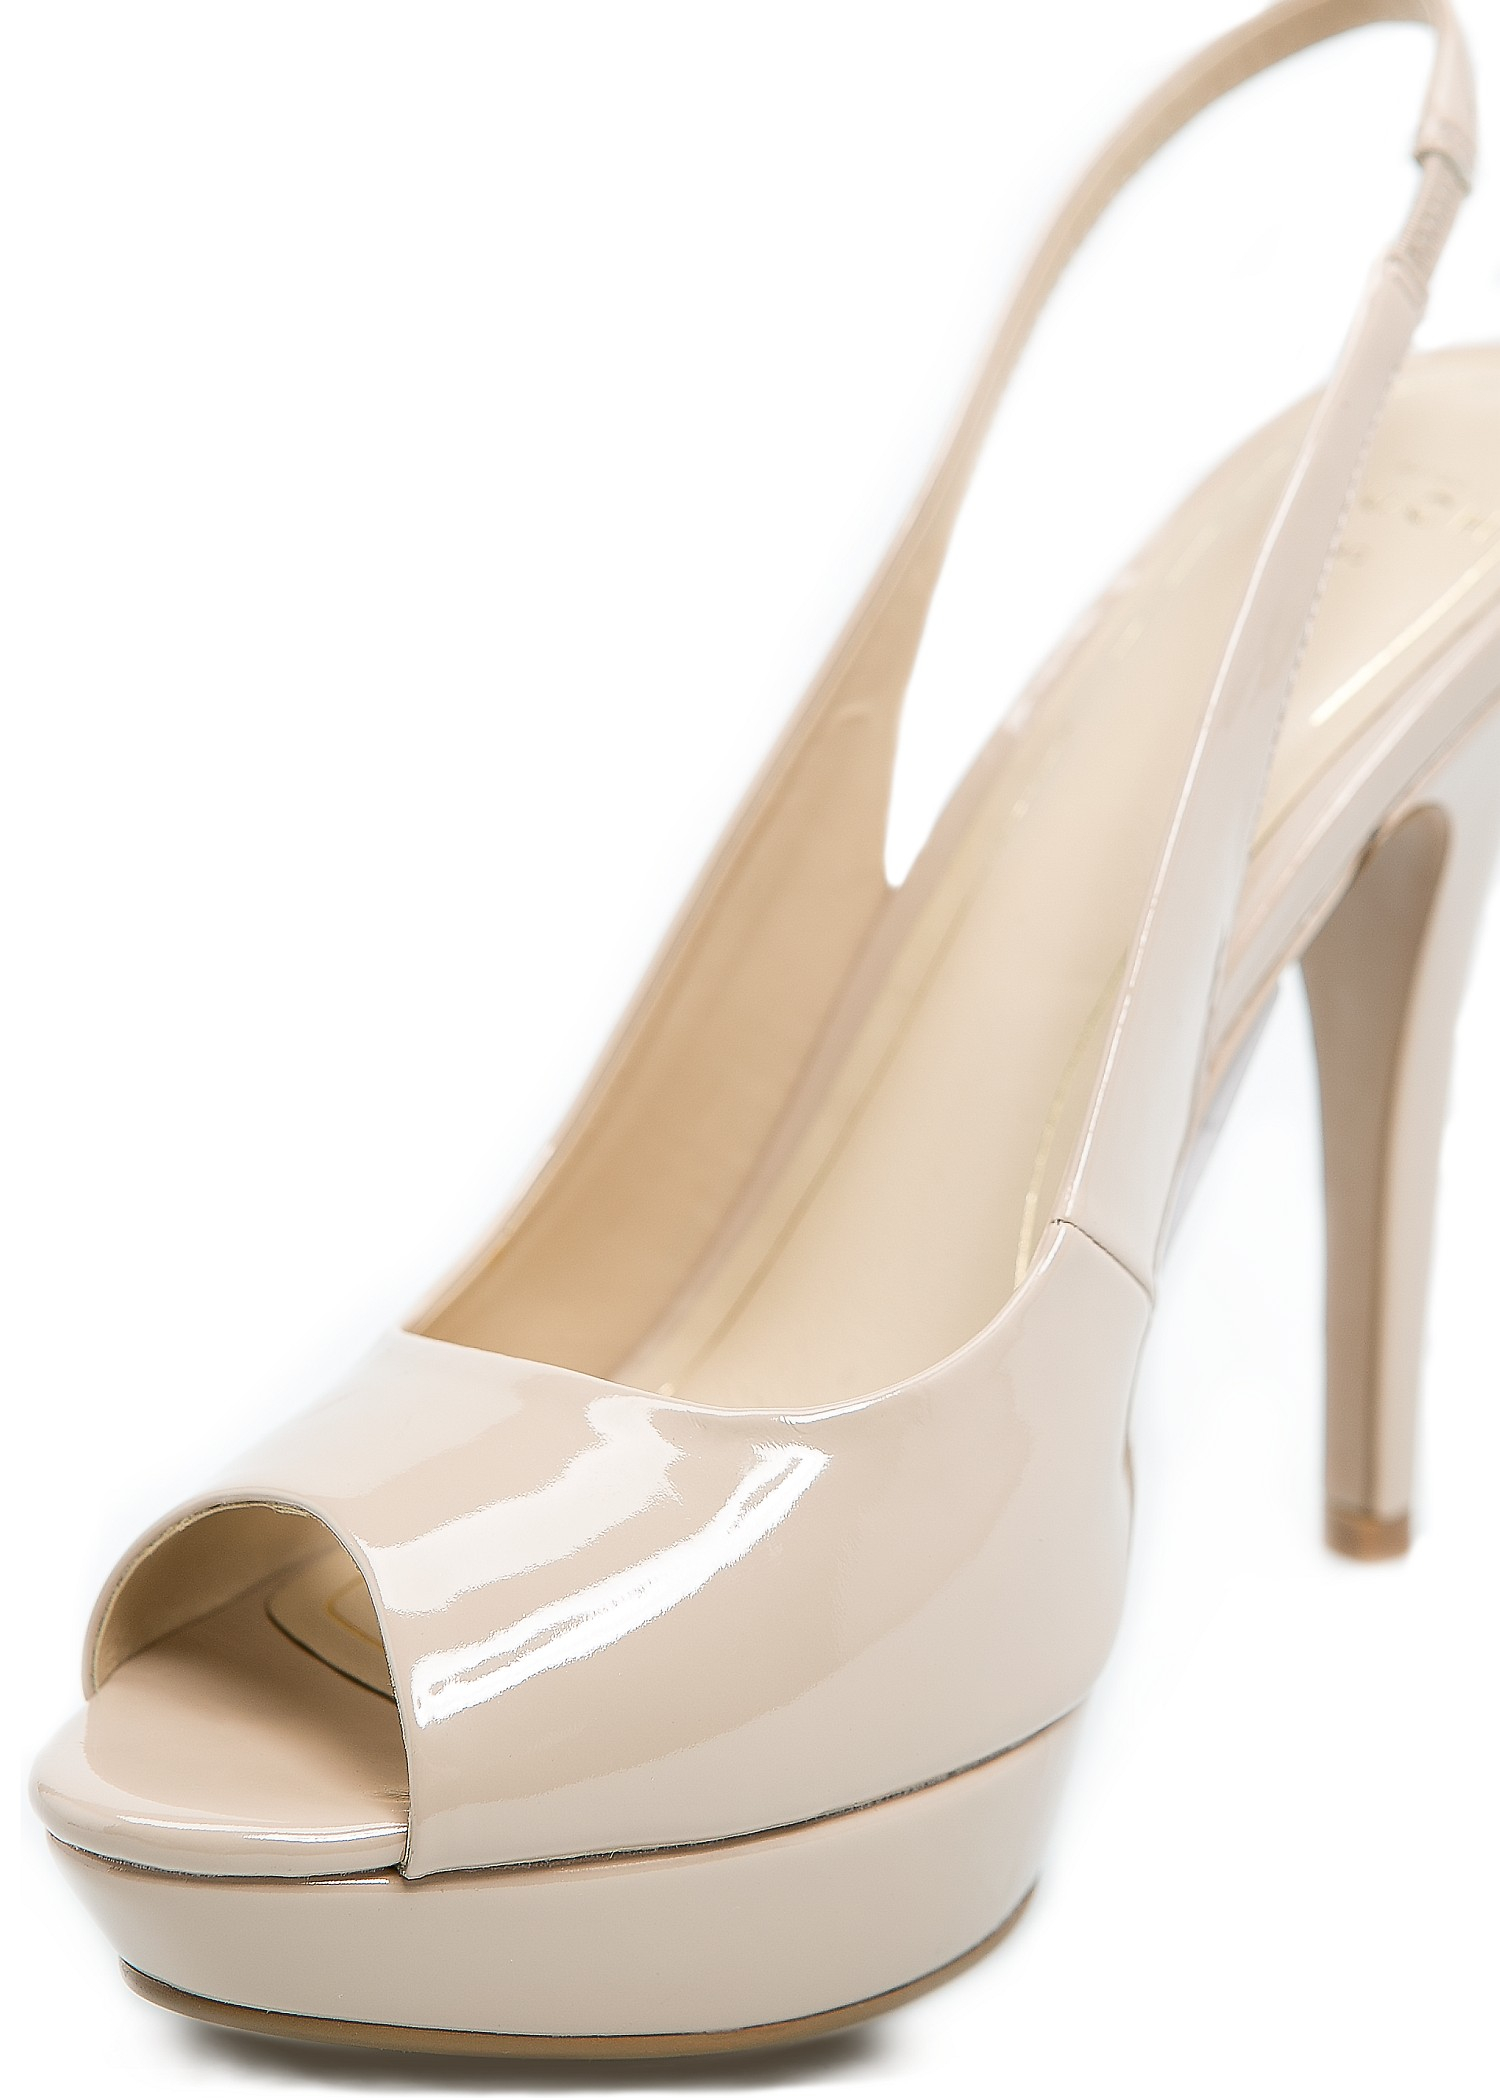 Lyst - Mango Touch Patent Sling Back Peep-toe Shoes in Natural ba9428d0a